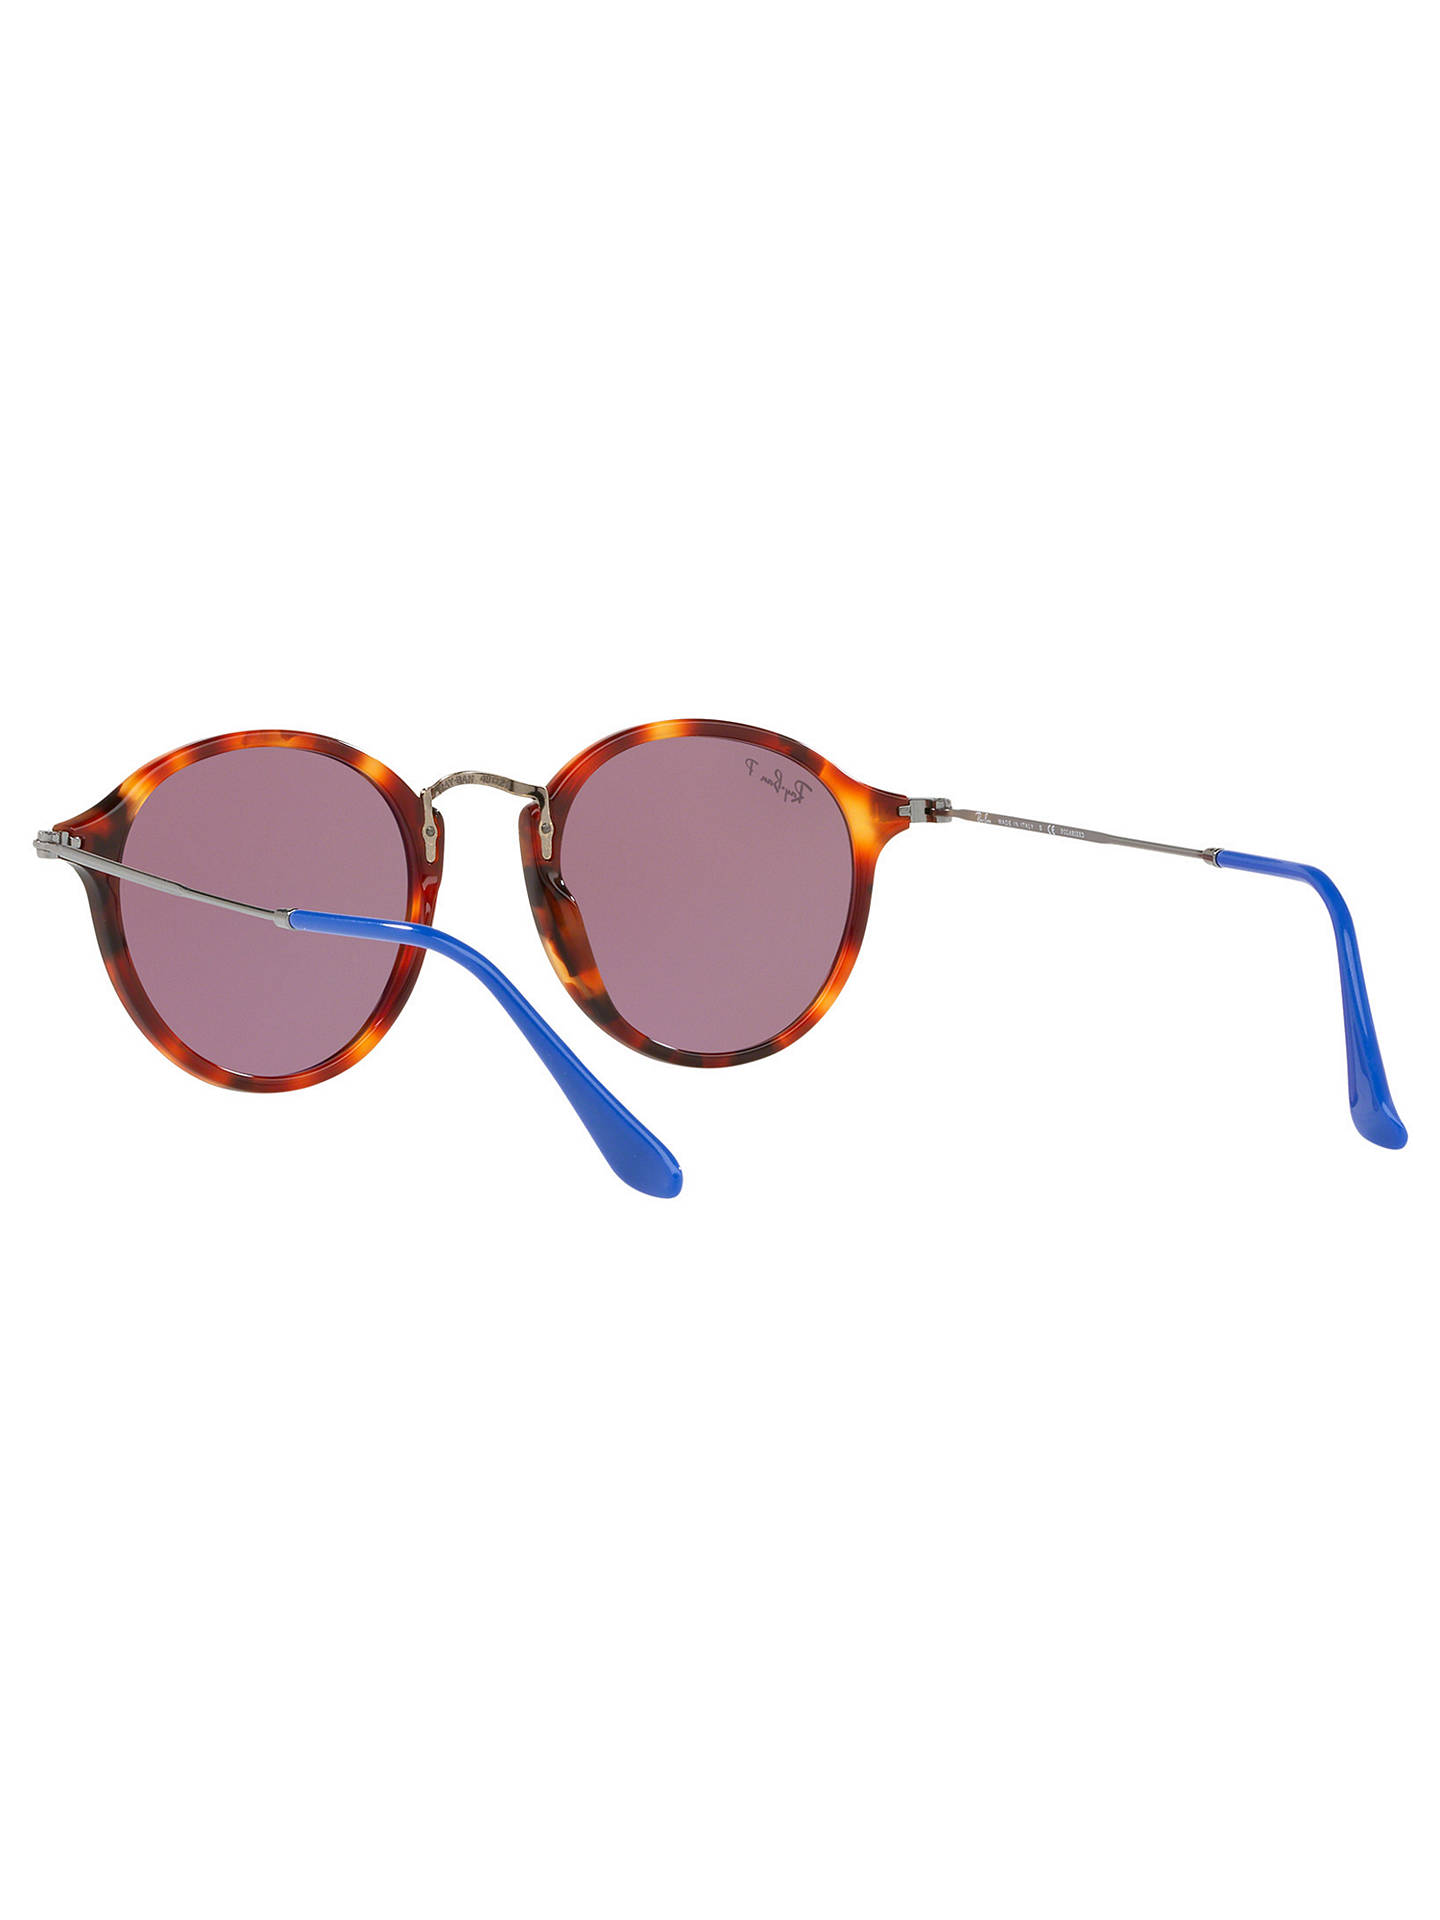 BuyRay-Ban RB2447 Round Men's Polarised Sunglasses, Tortoise/Red Online at johnlewis.com